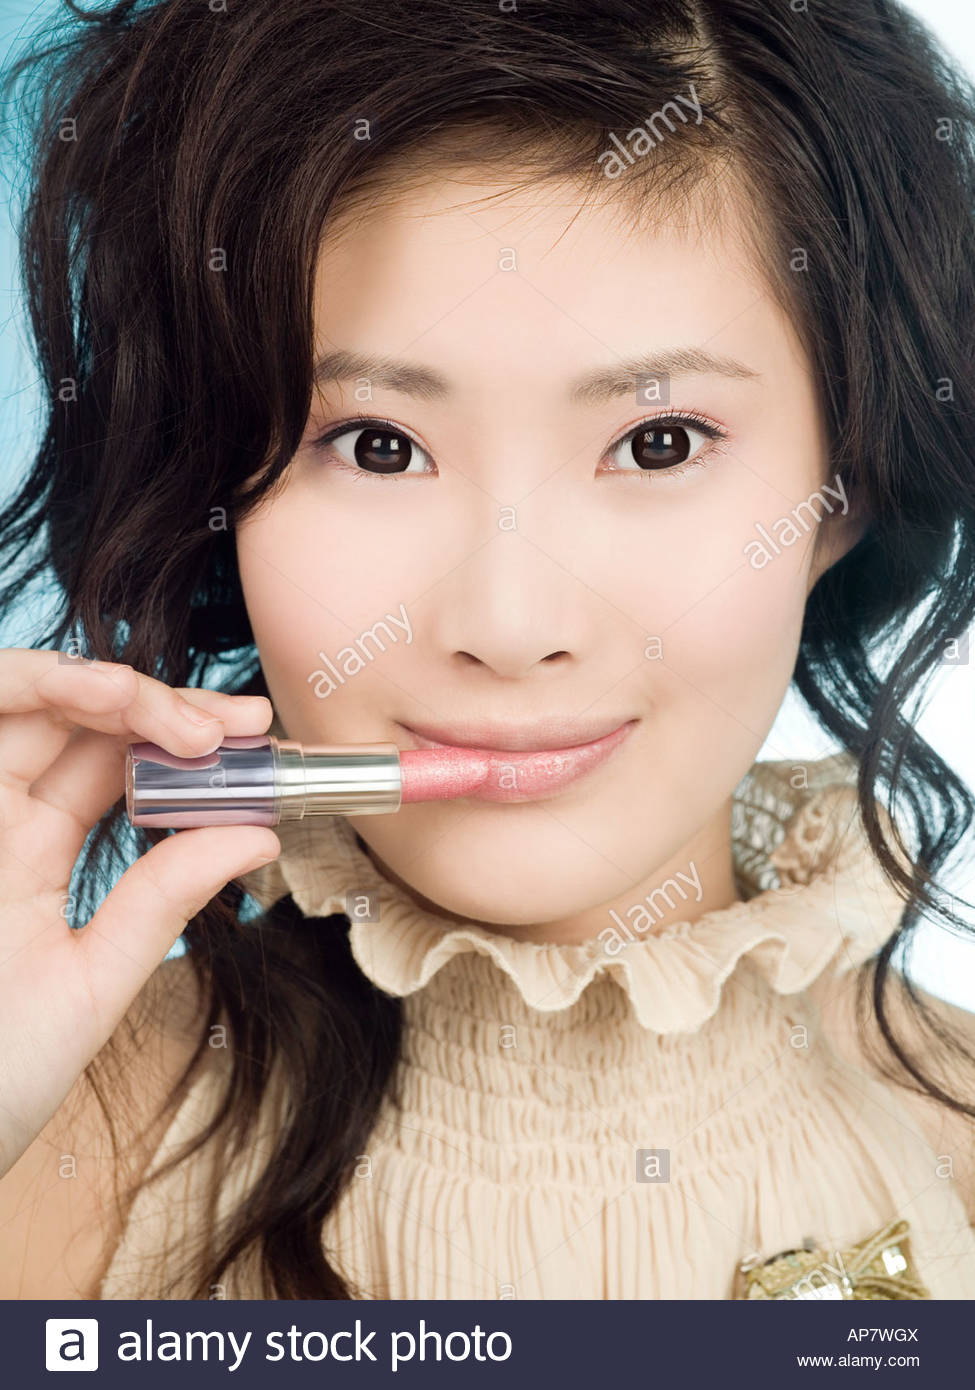 Chinese woman applying lipstick - Stock Image